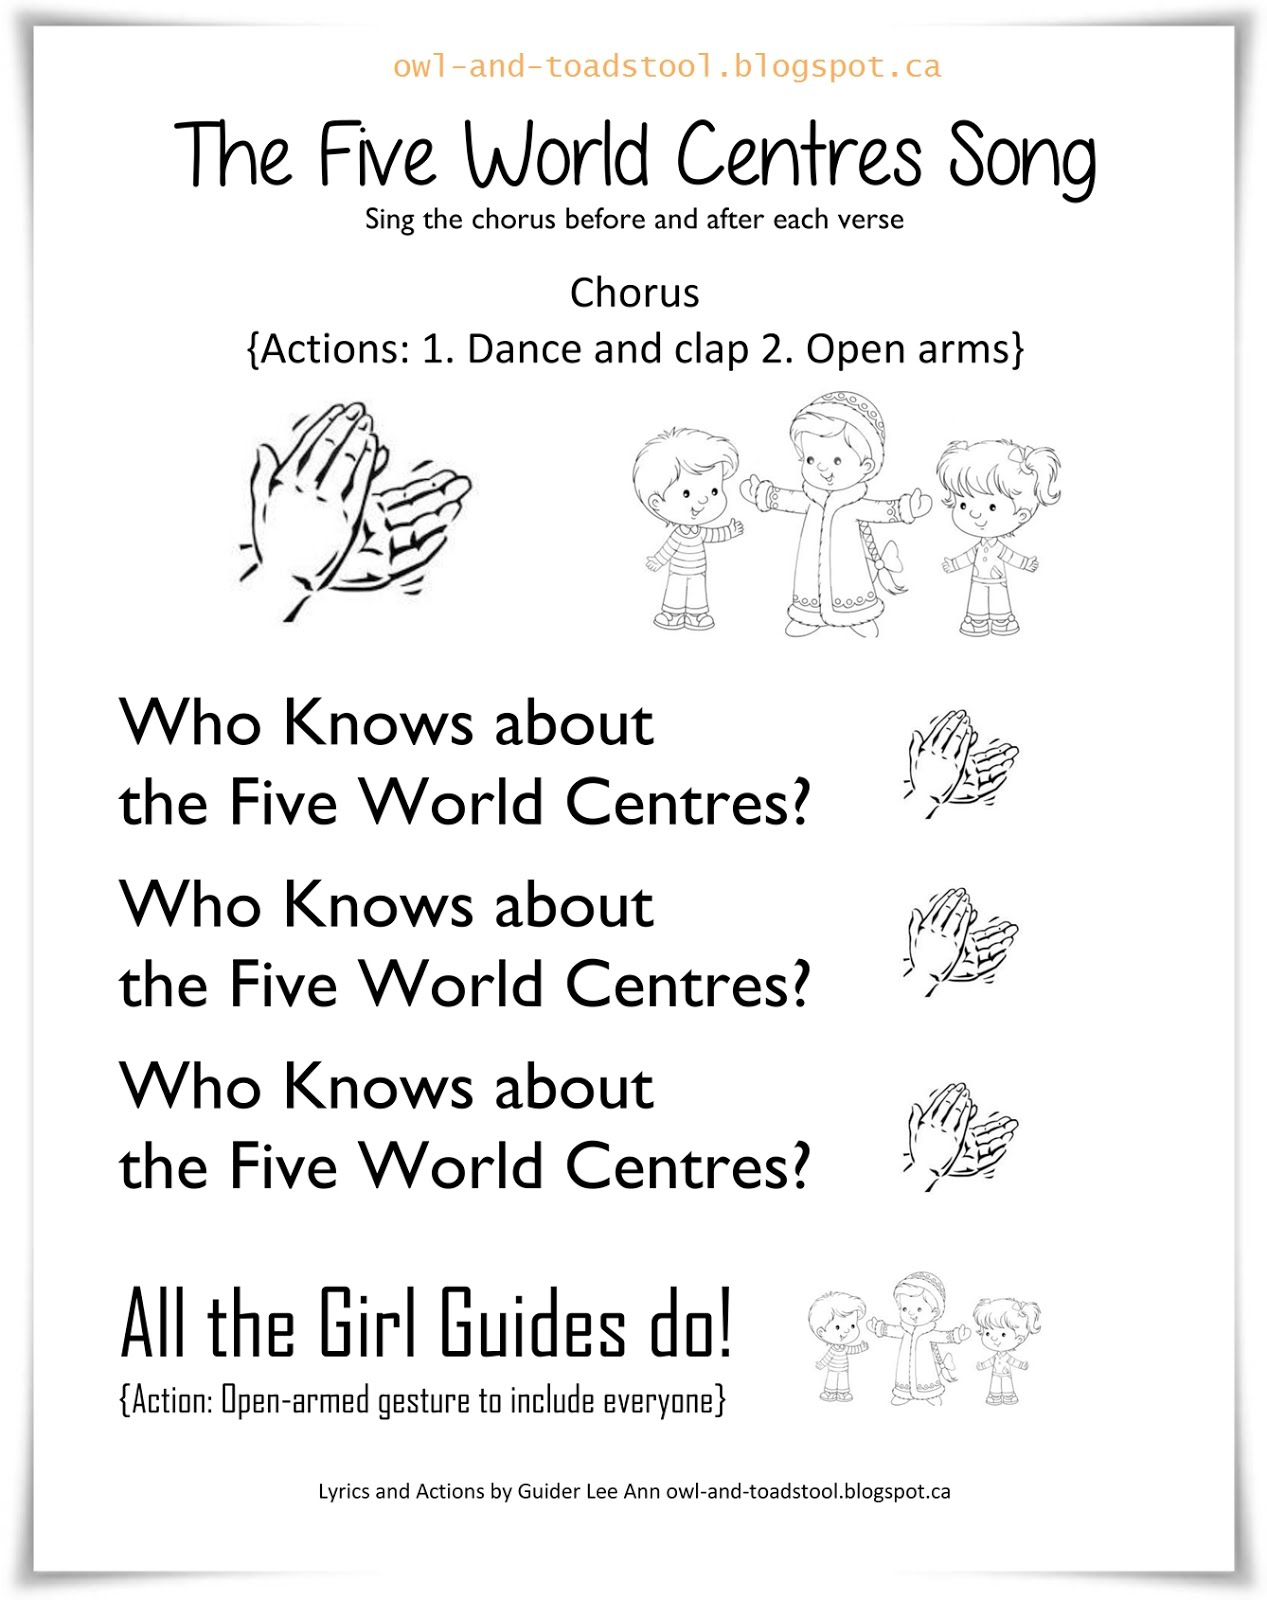 The Five World Centres Song